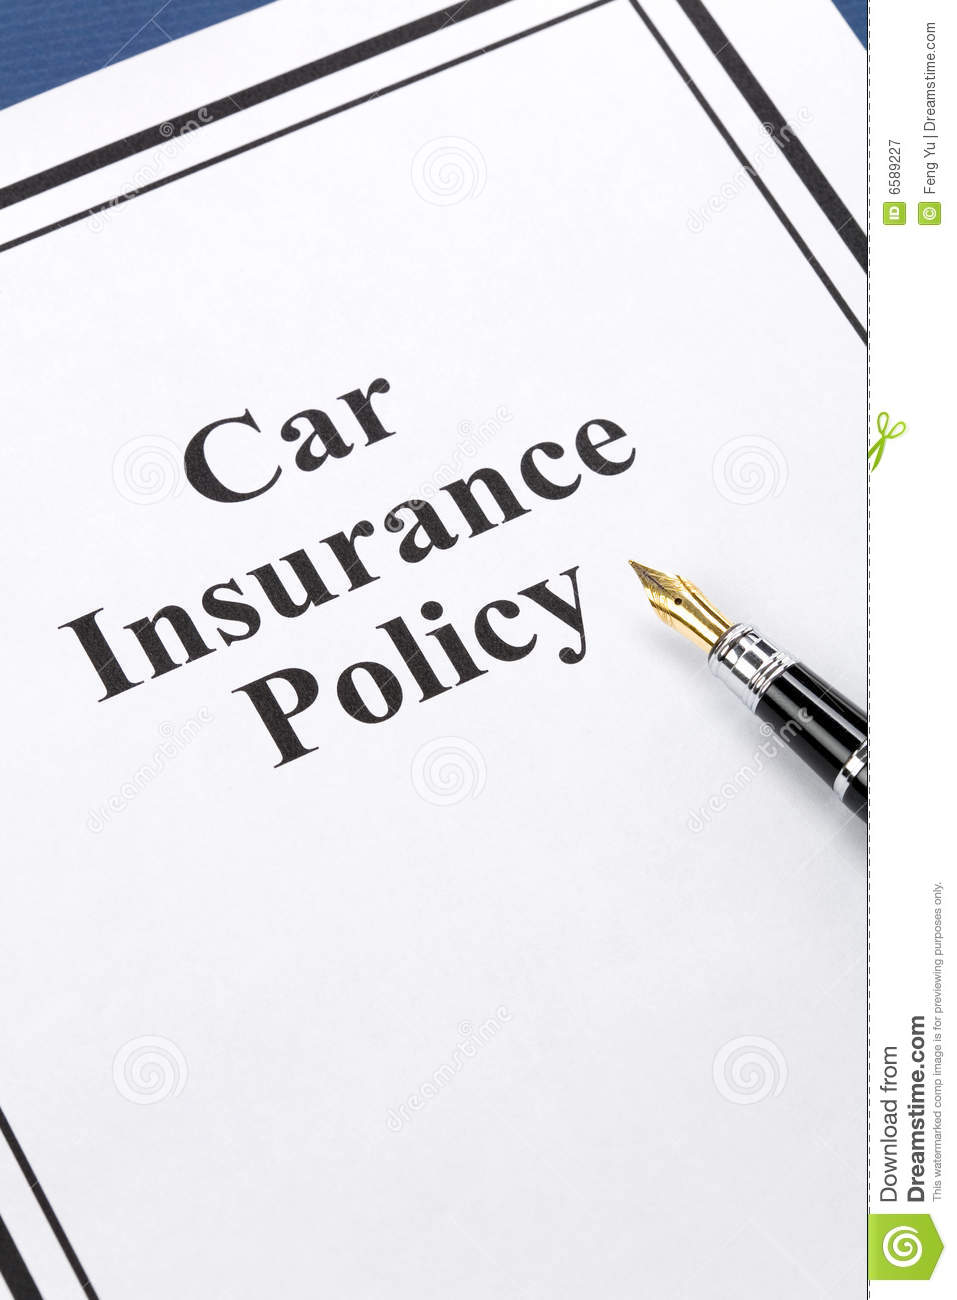 Car Insurance Policy Stock Image Image Of Paper Protection 6589227